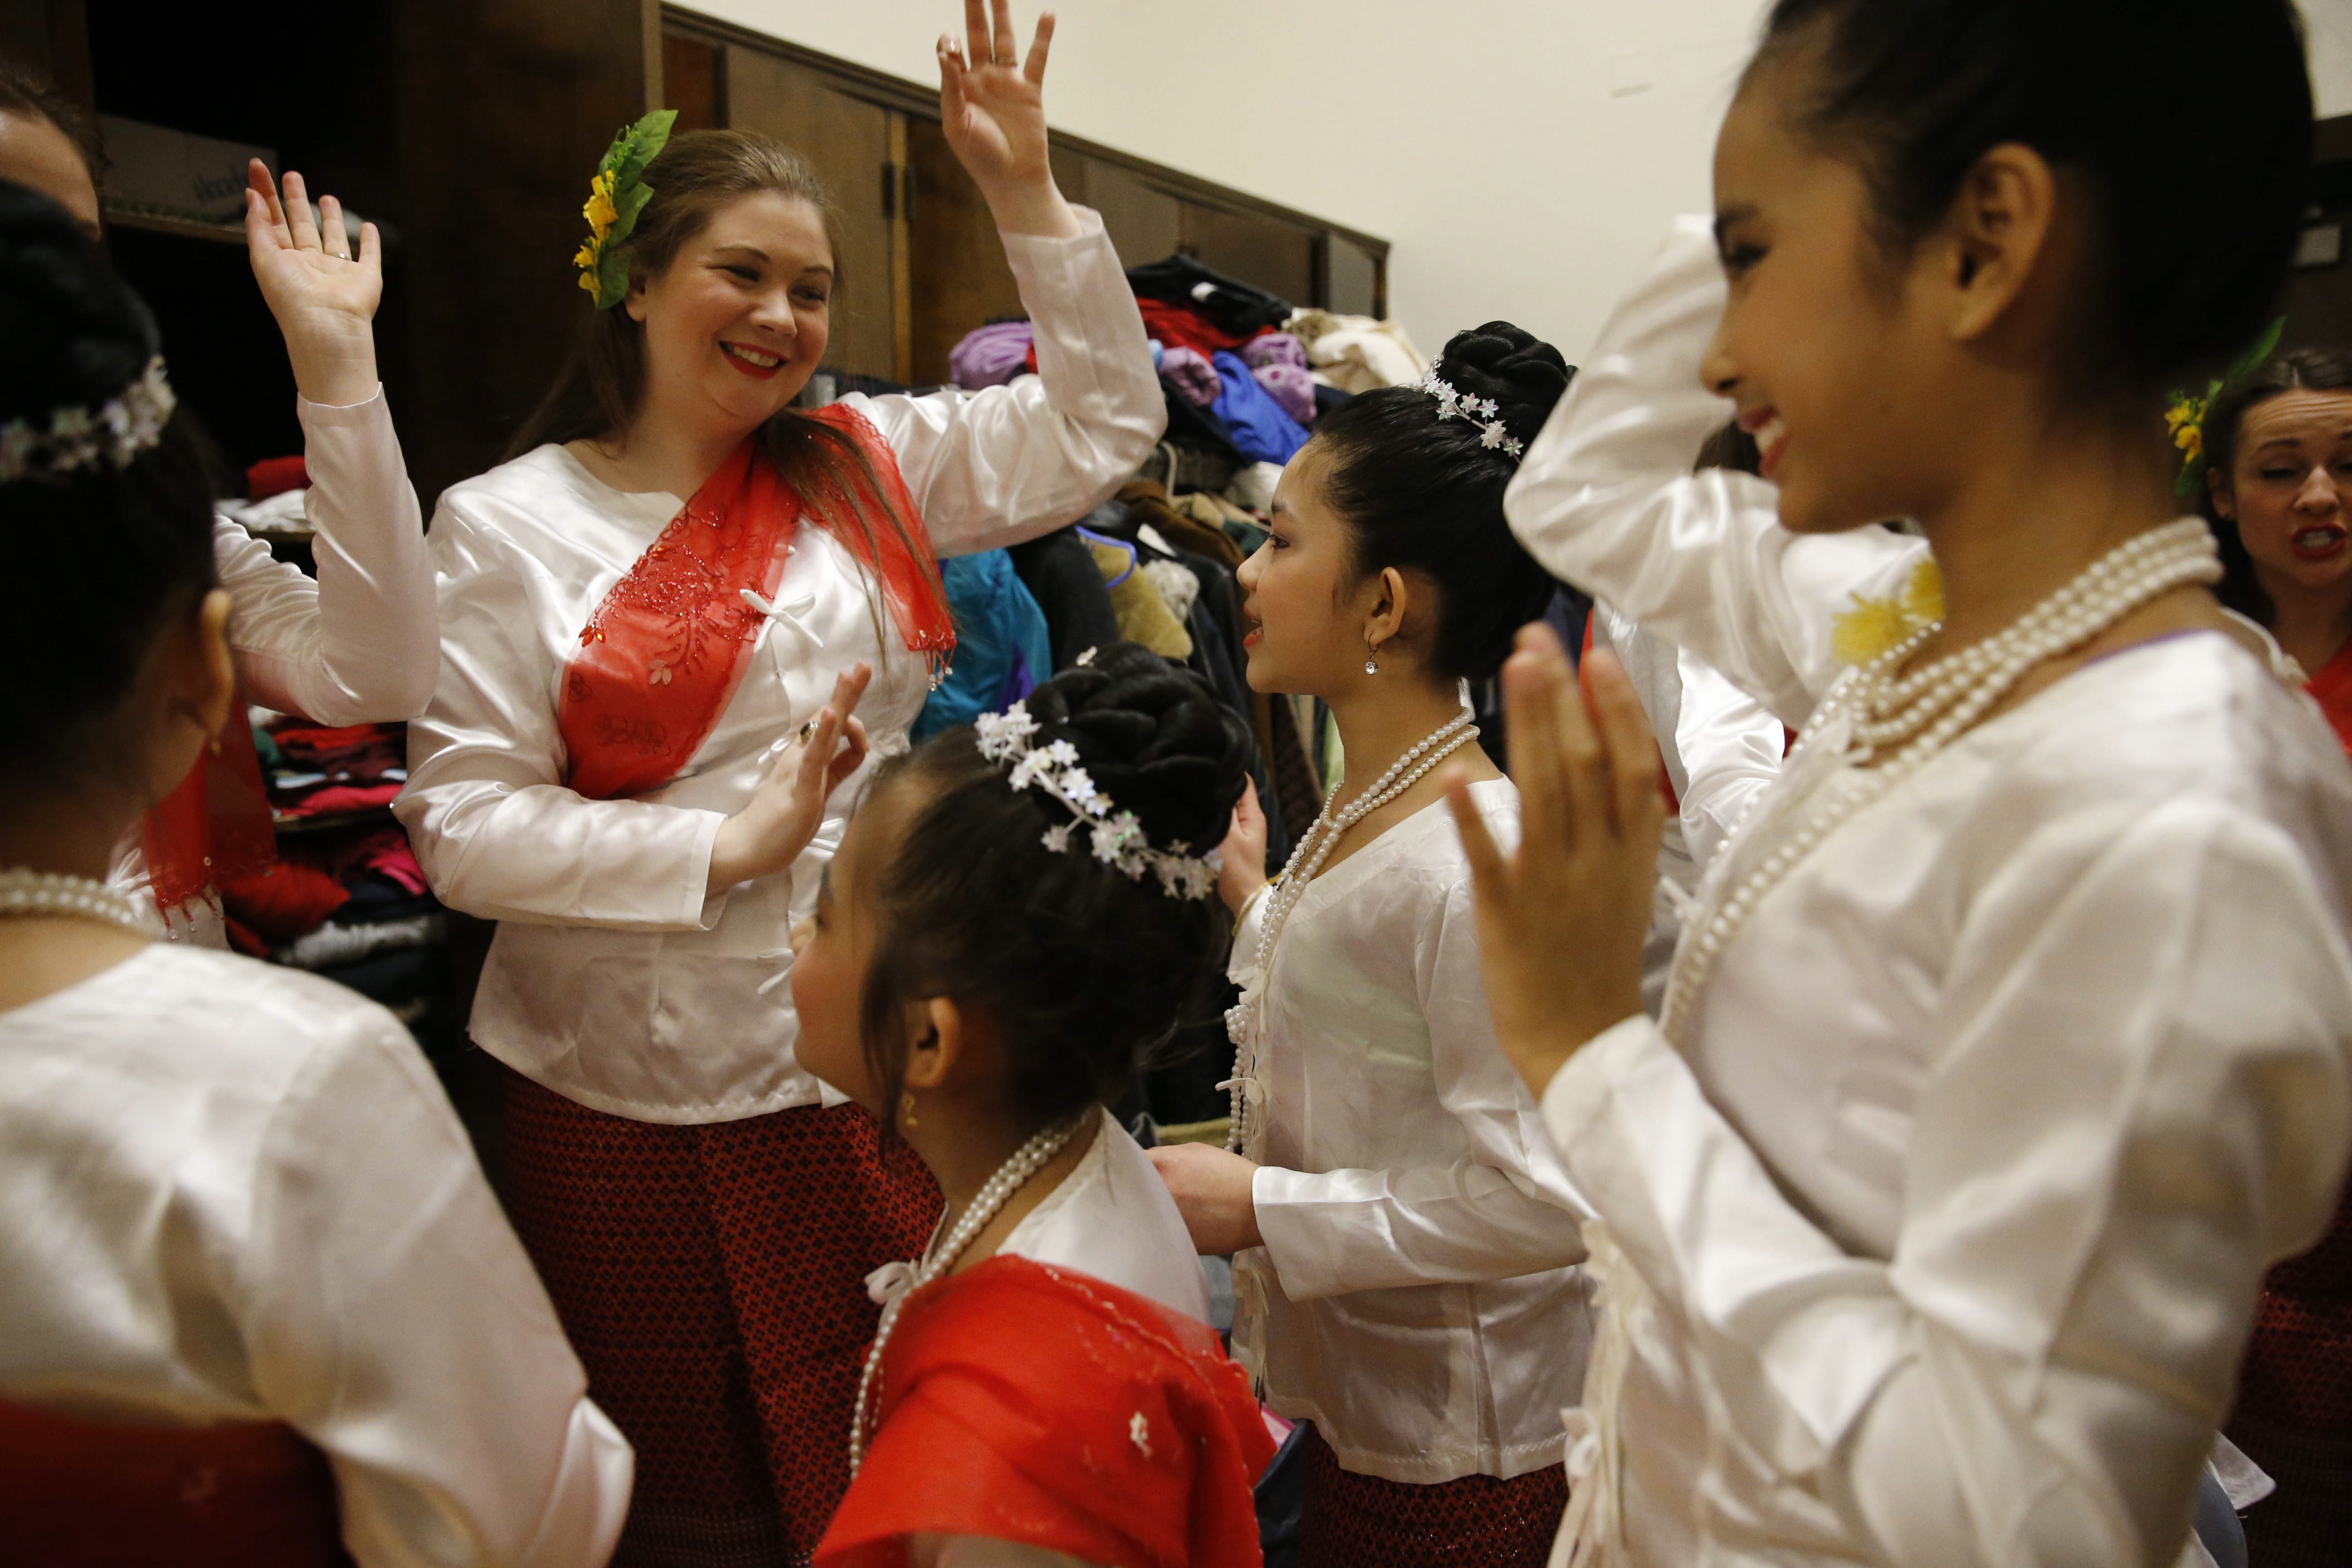 Teacher Kelly Cooper danced with young Burmese refugees on Mon National Day celebrations last Feb. 28. (Derek Gee/Buffalo News)